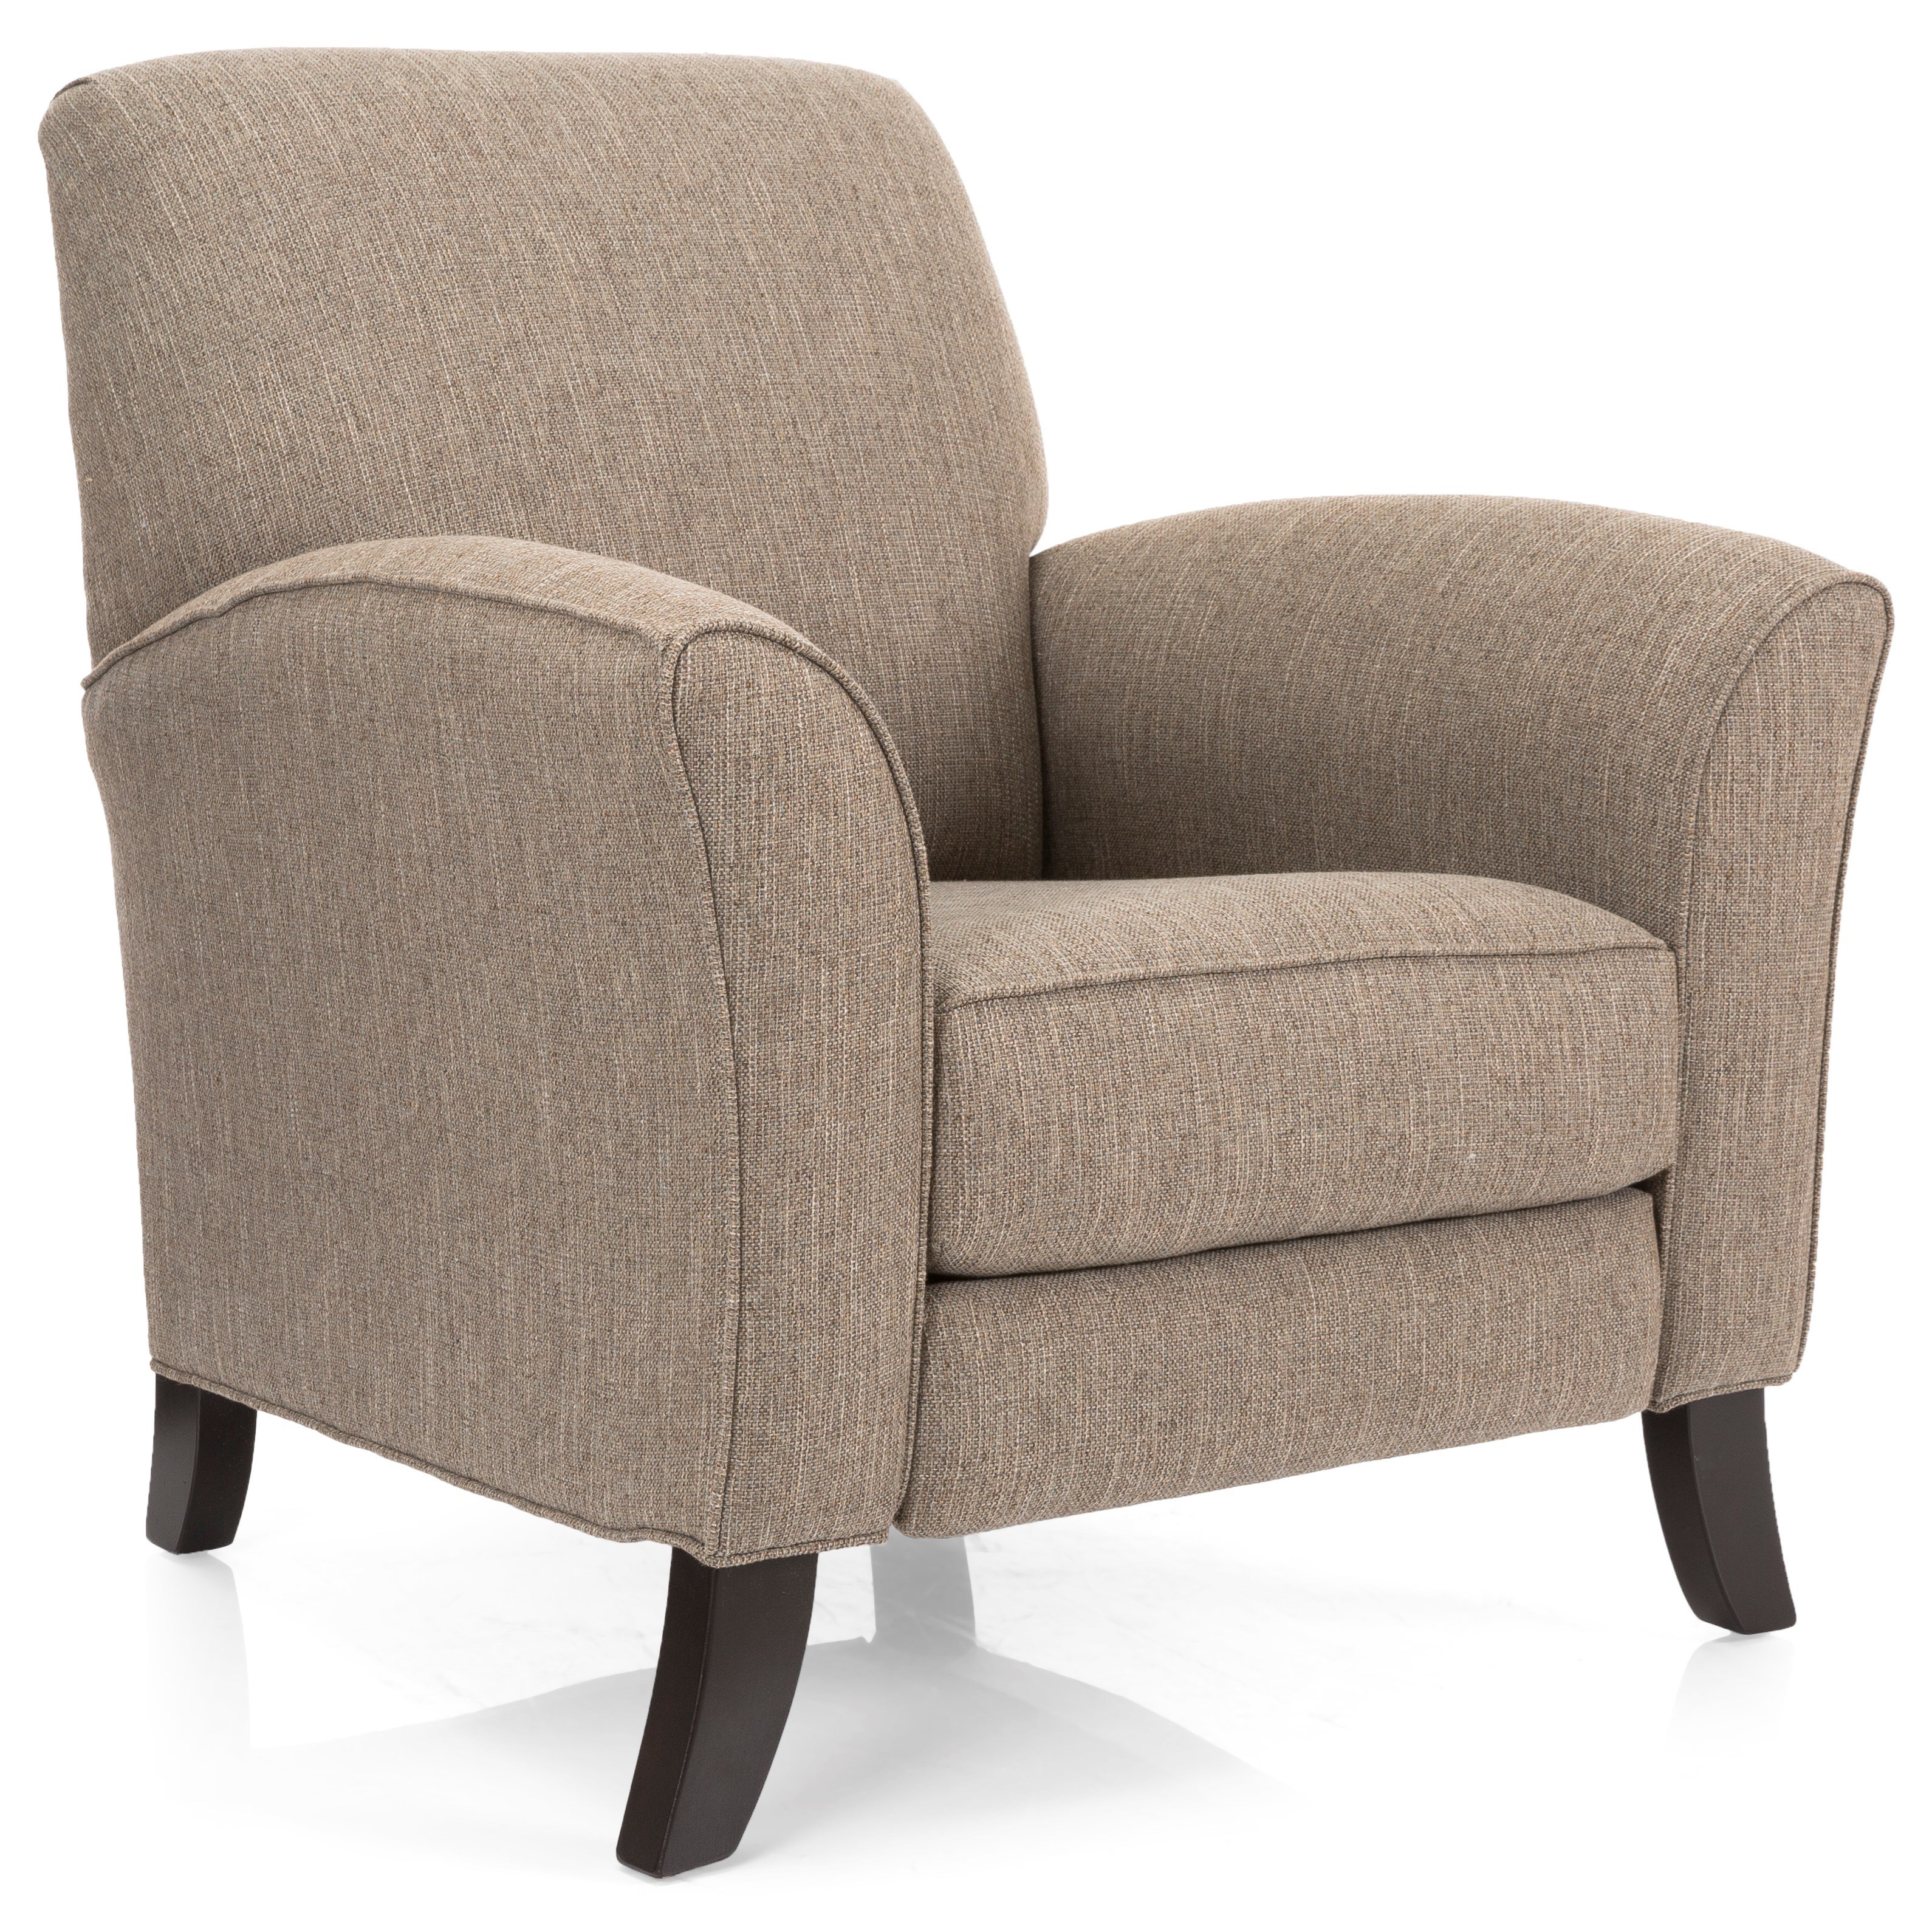 Melissa Push Back Recliner by Taelor Designs at Bennett's Furniture and Mattresses